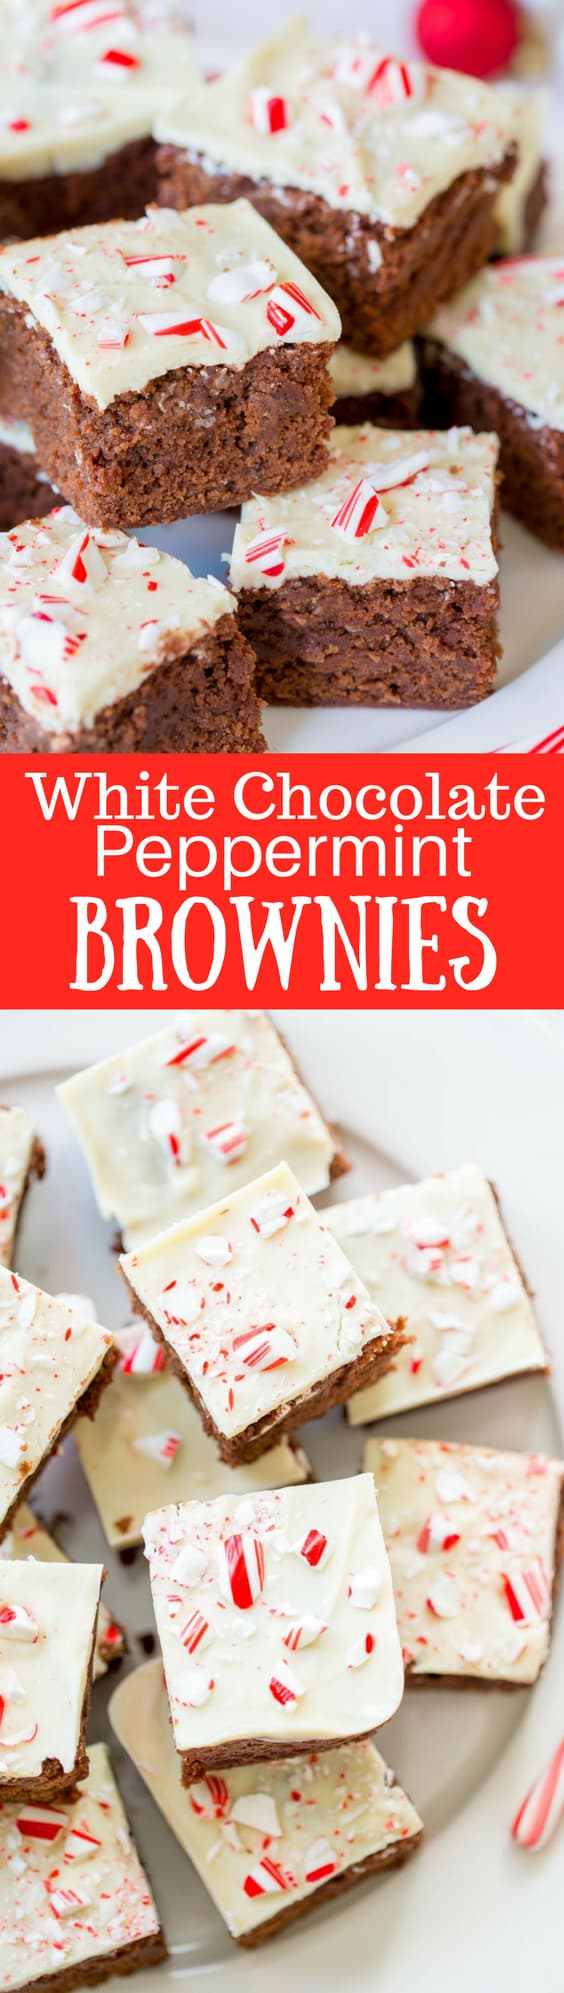 White Chocolate Peppermint Brownies - Saving Room for Dessert